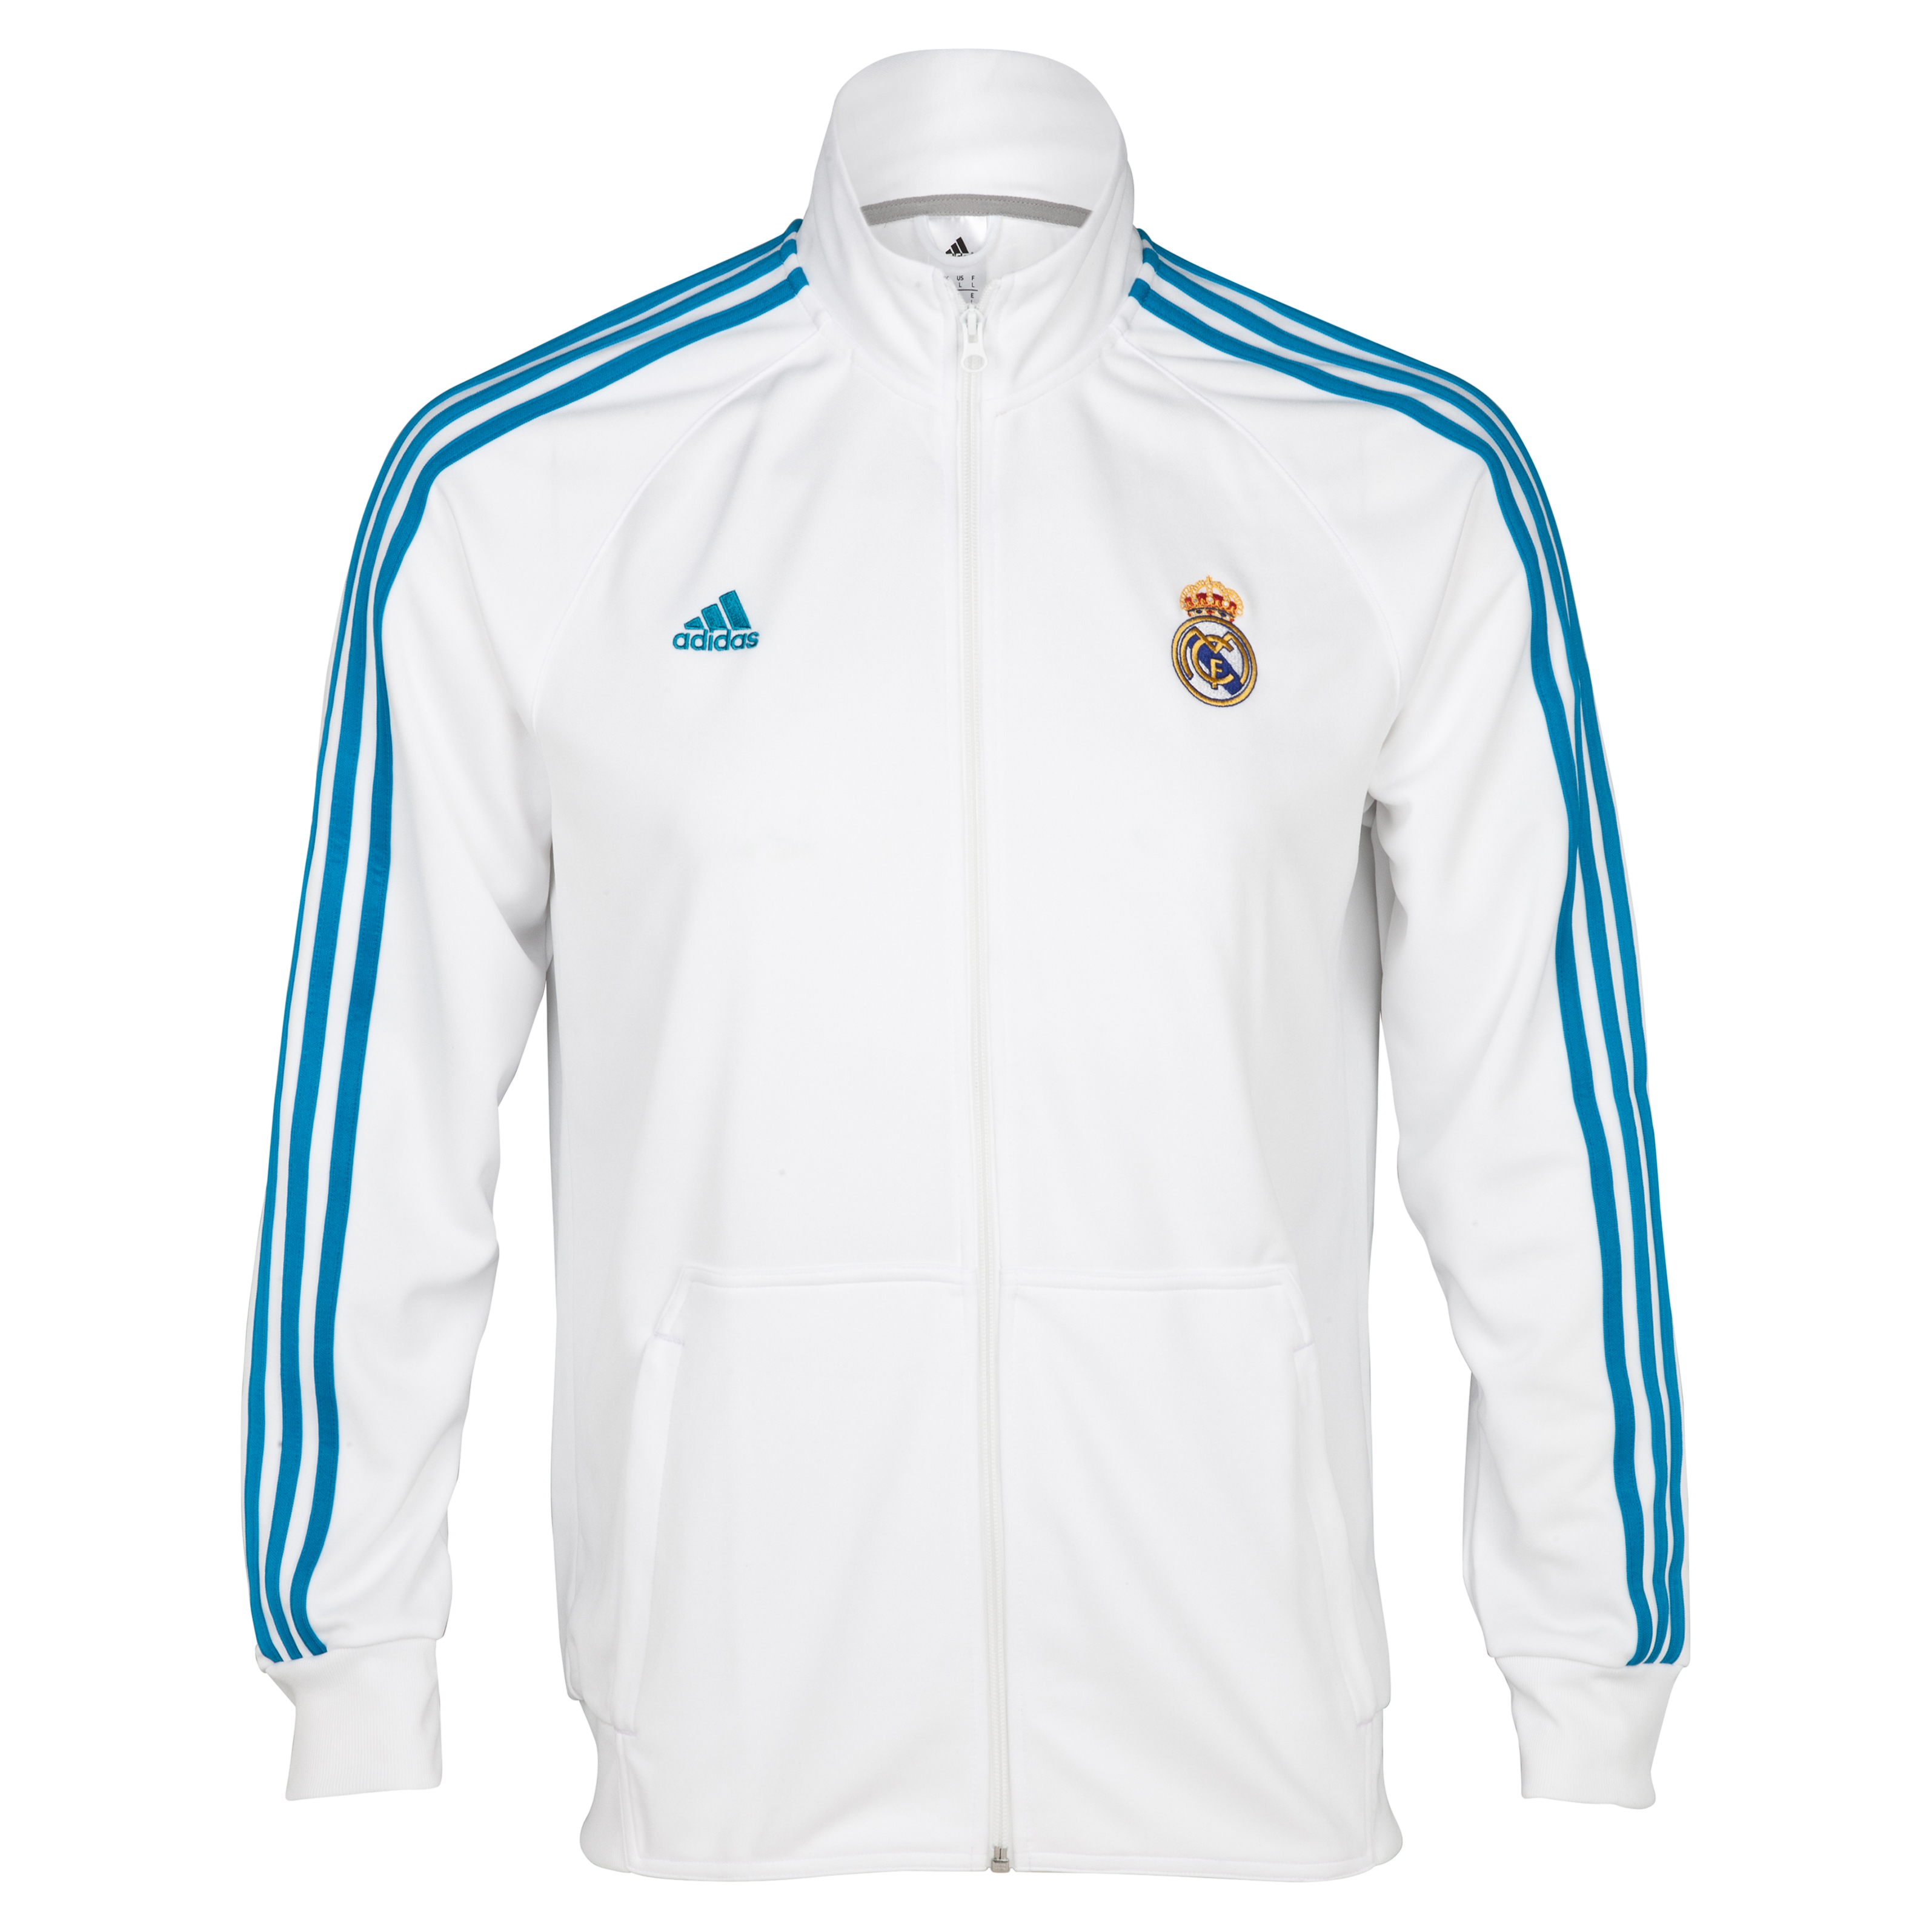 Chaqueta chndal Core Real Madrid - Blanco/turquesa